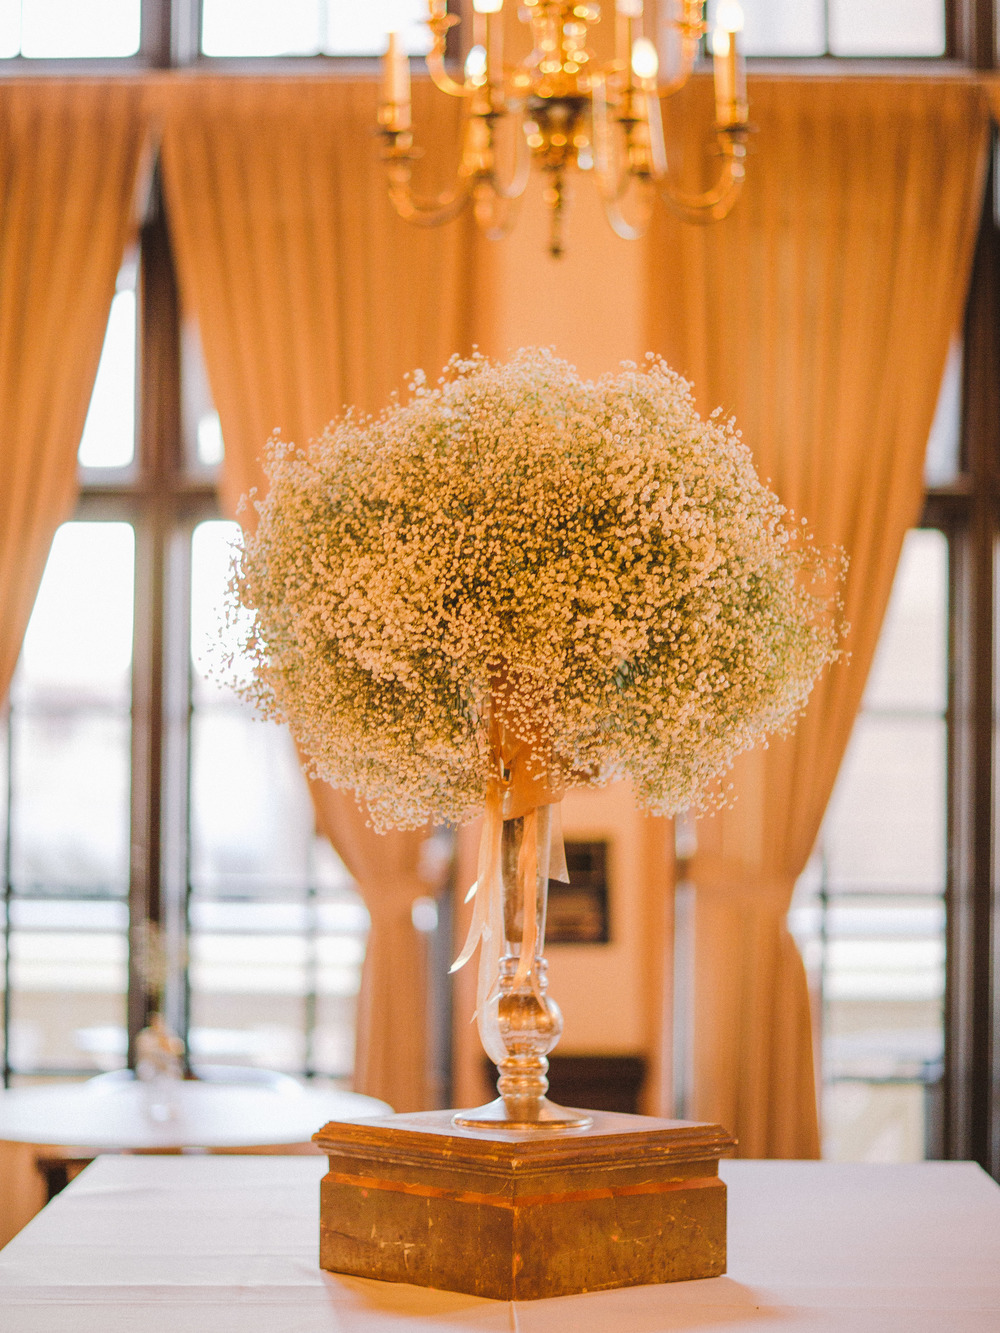 The bride's favorite flower, baby's breath